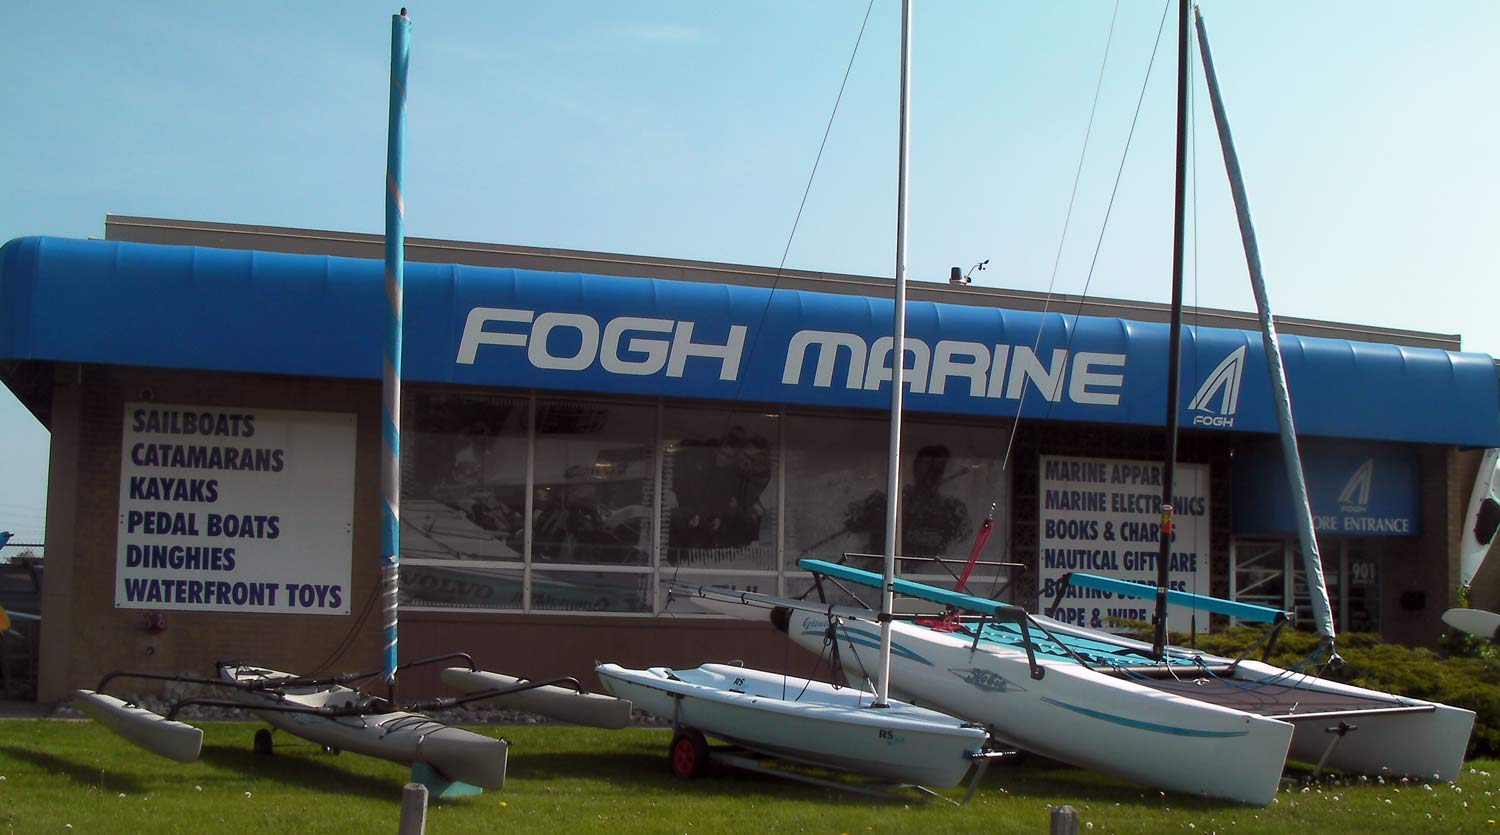 Paddle And Sail Perform Play Fogh Marine Boat Wiring For Dummies Manual Store Front Boats